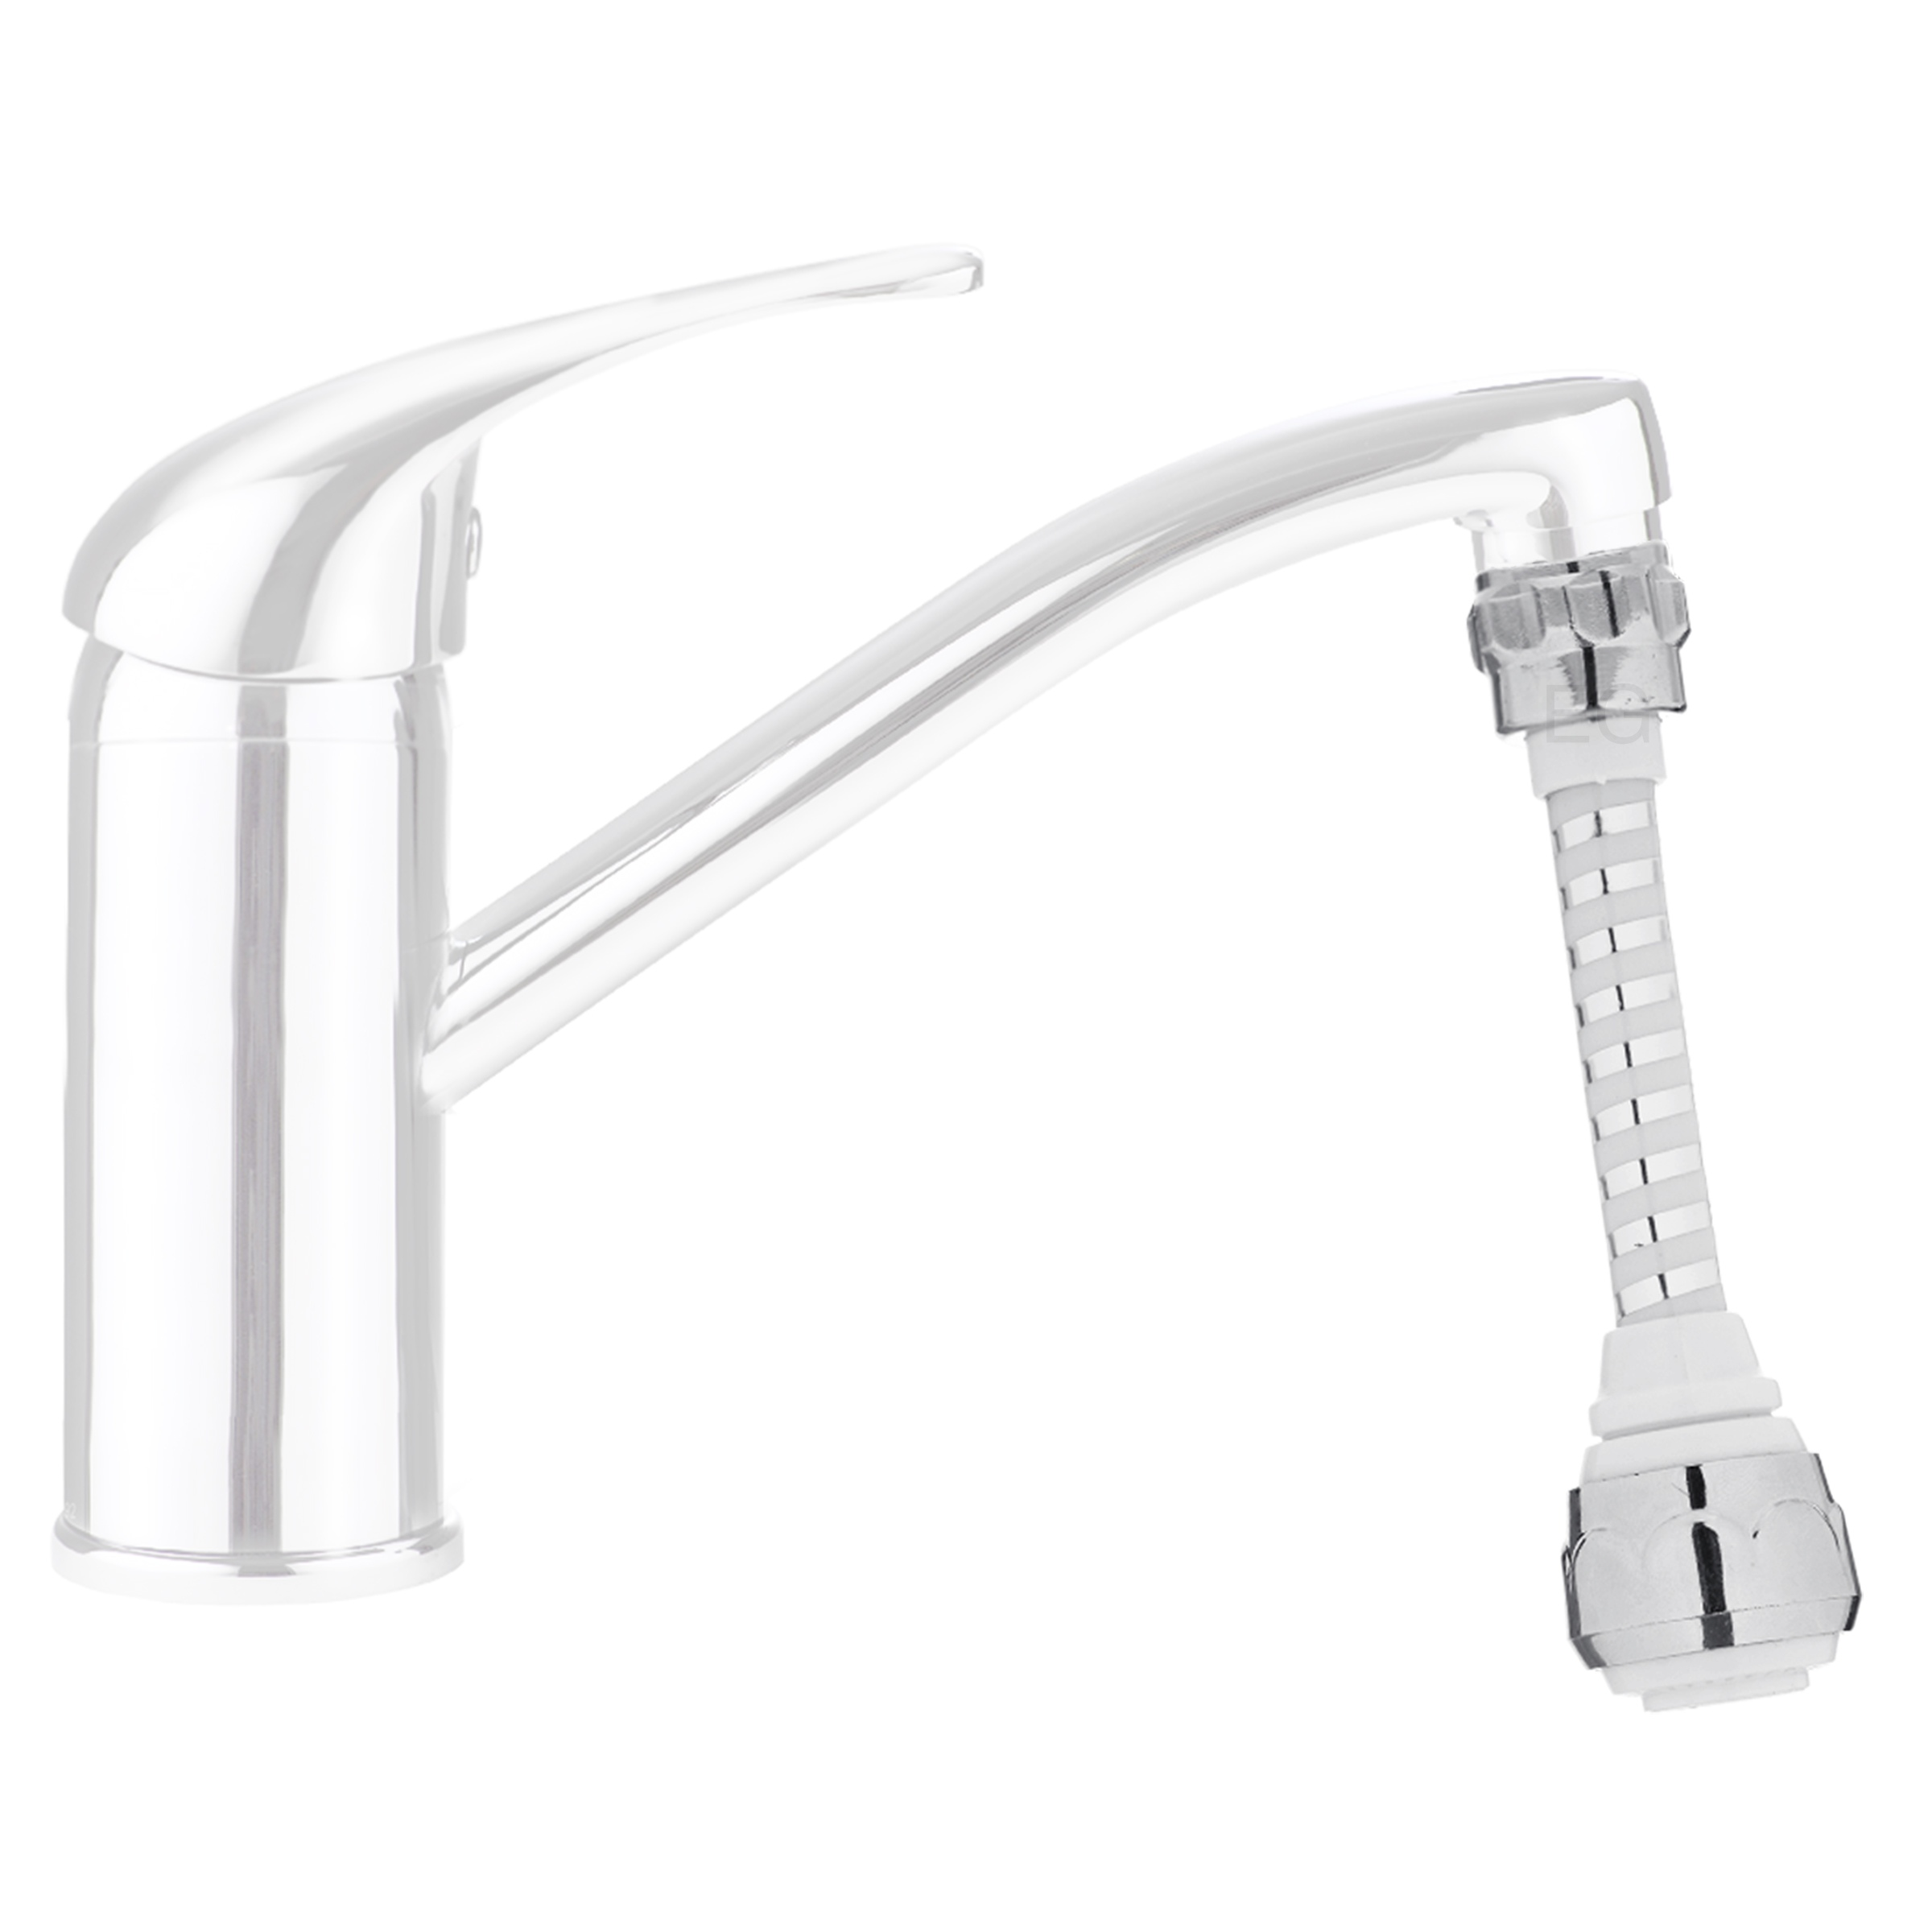 water saving kitchen tap aerator hose adjustable faucet high efficiency aerators amp faucet aerator adapters